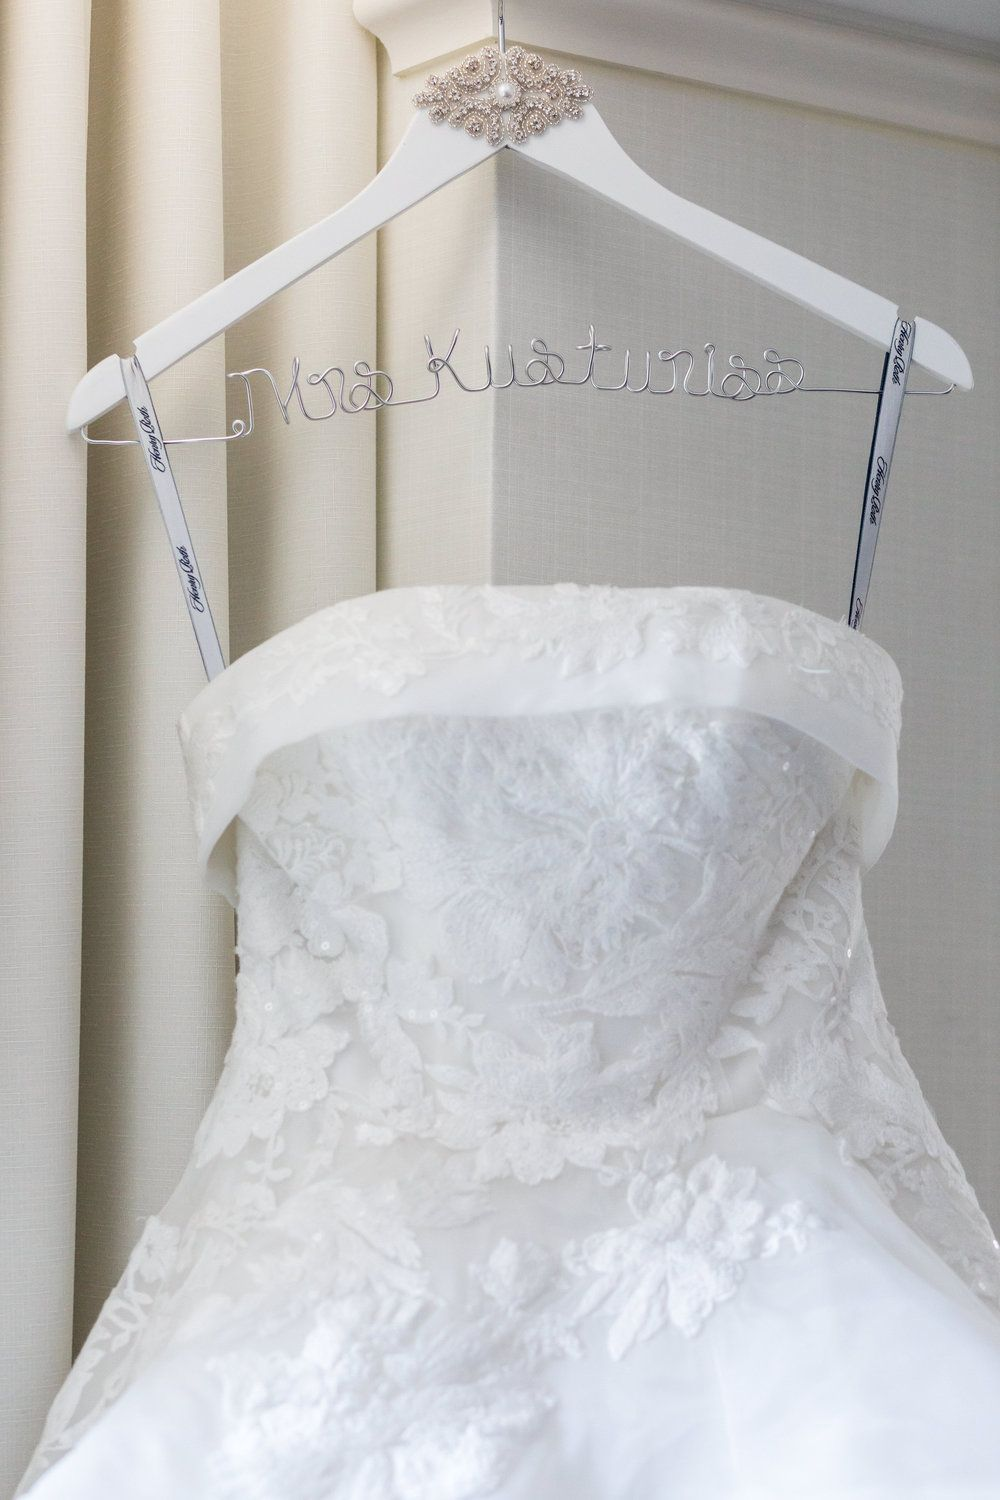 In love with the details on this dress hanger. Real